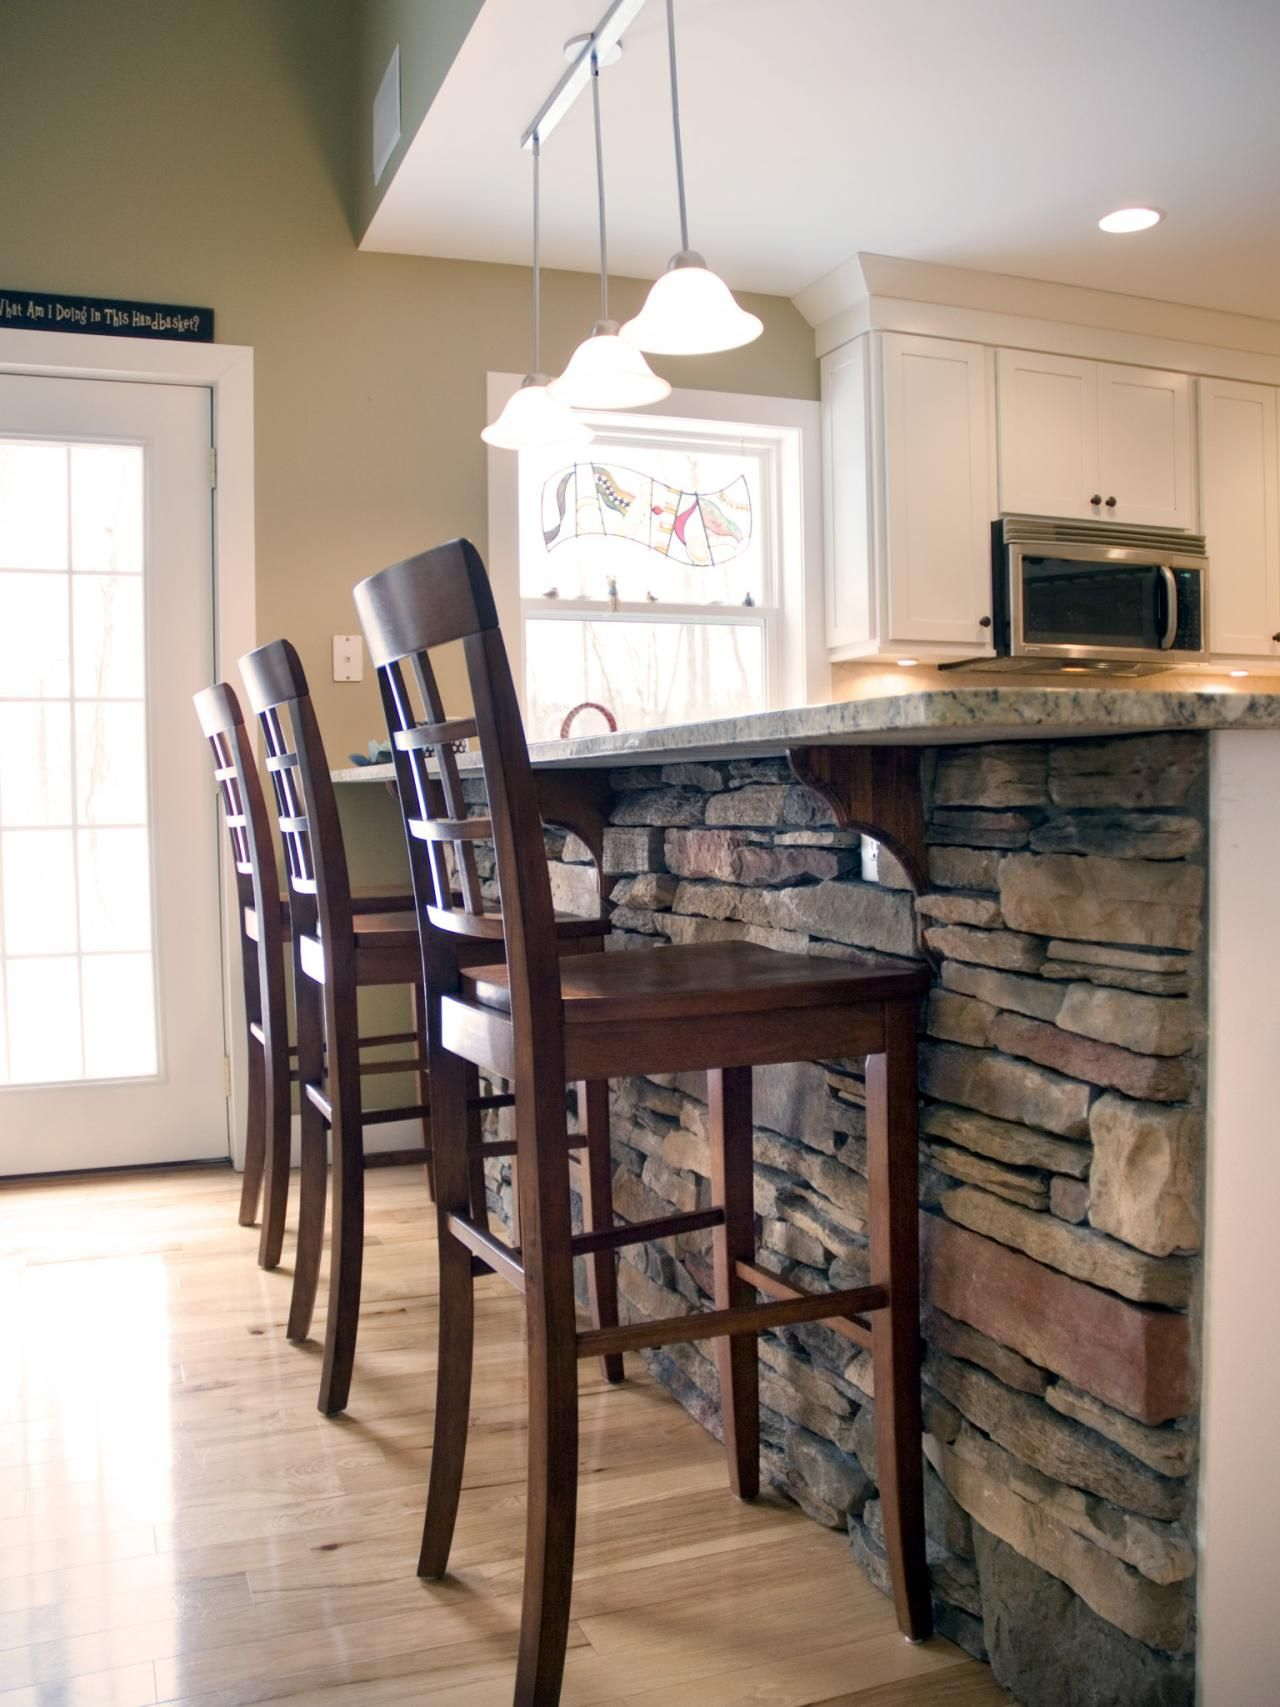 tips for remodeling a kitchen on a budget kitchen decor ideas